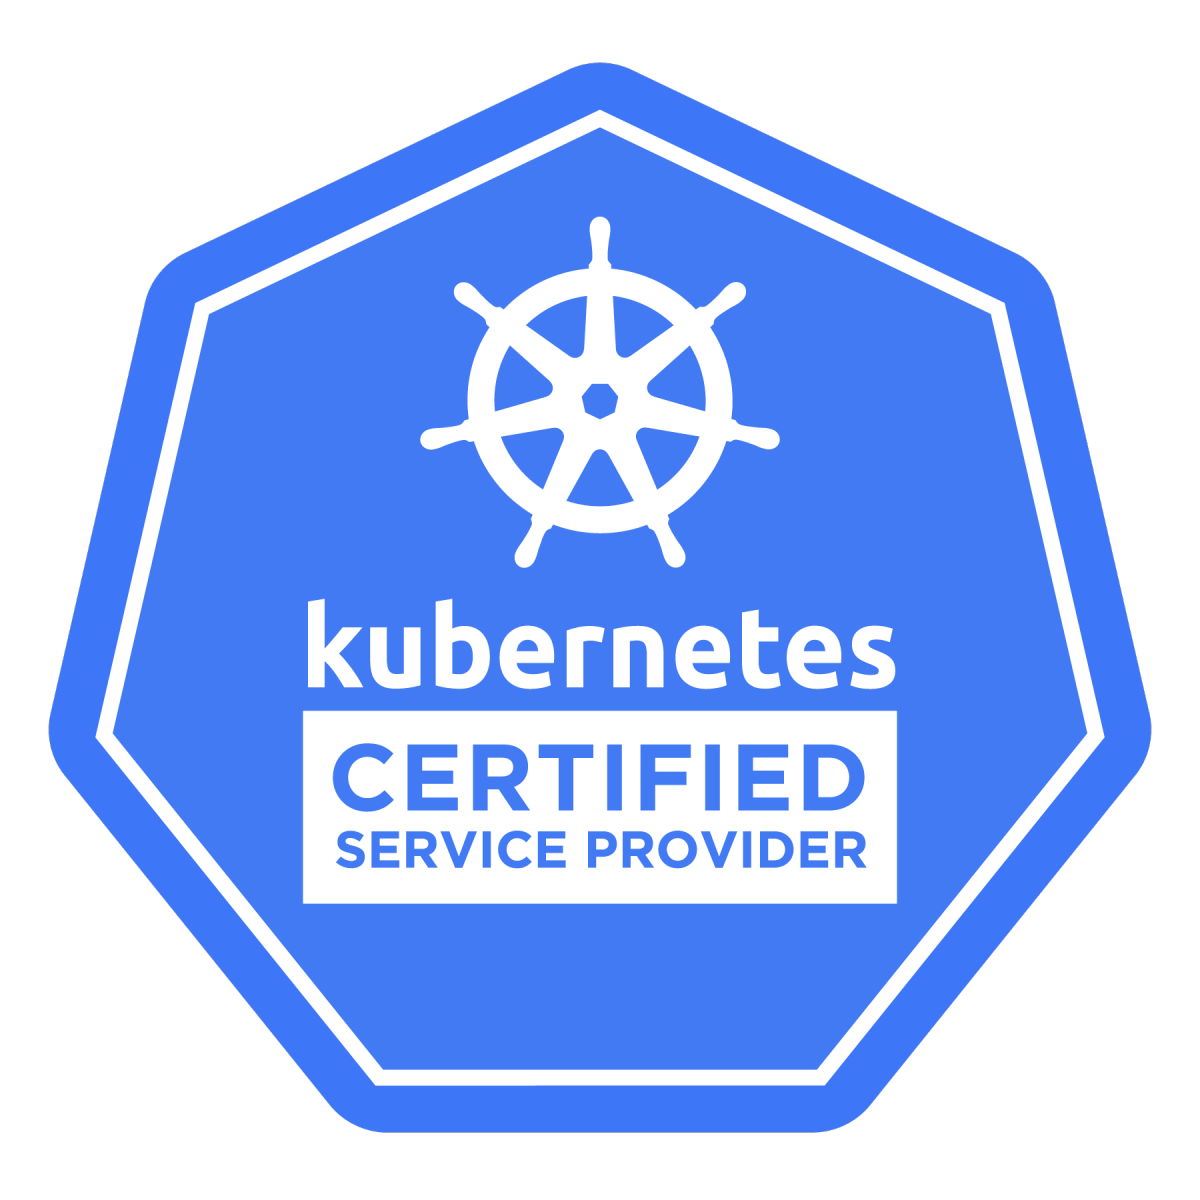 Kubernetes_Certified_Service_Provider_Logo.png